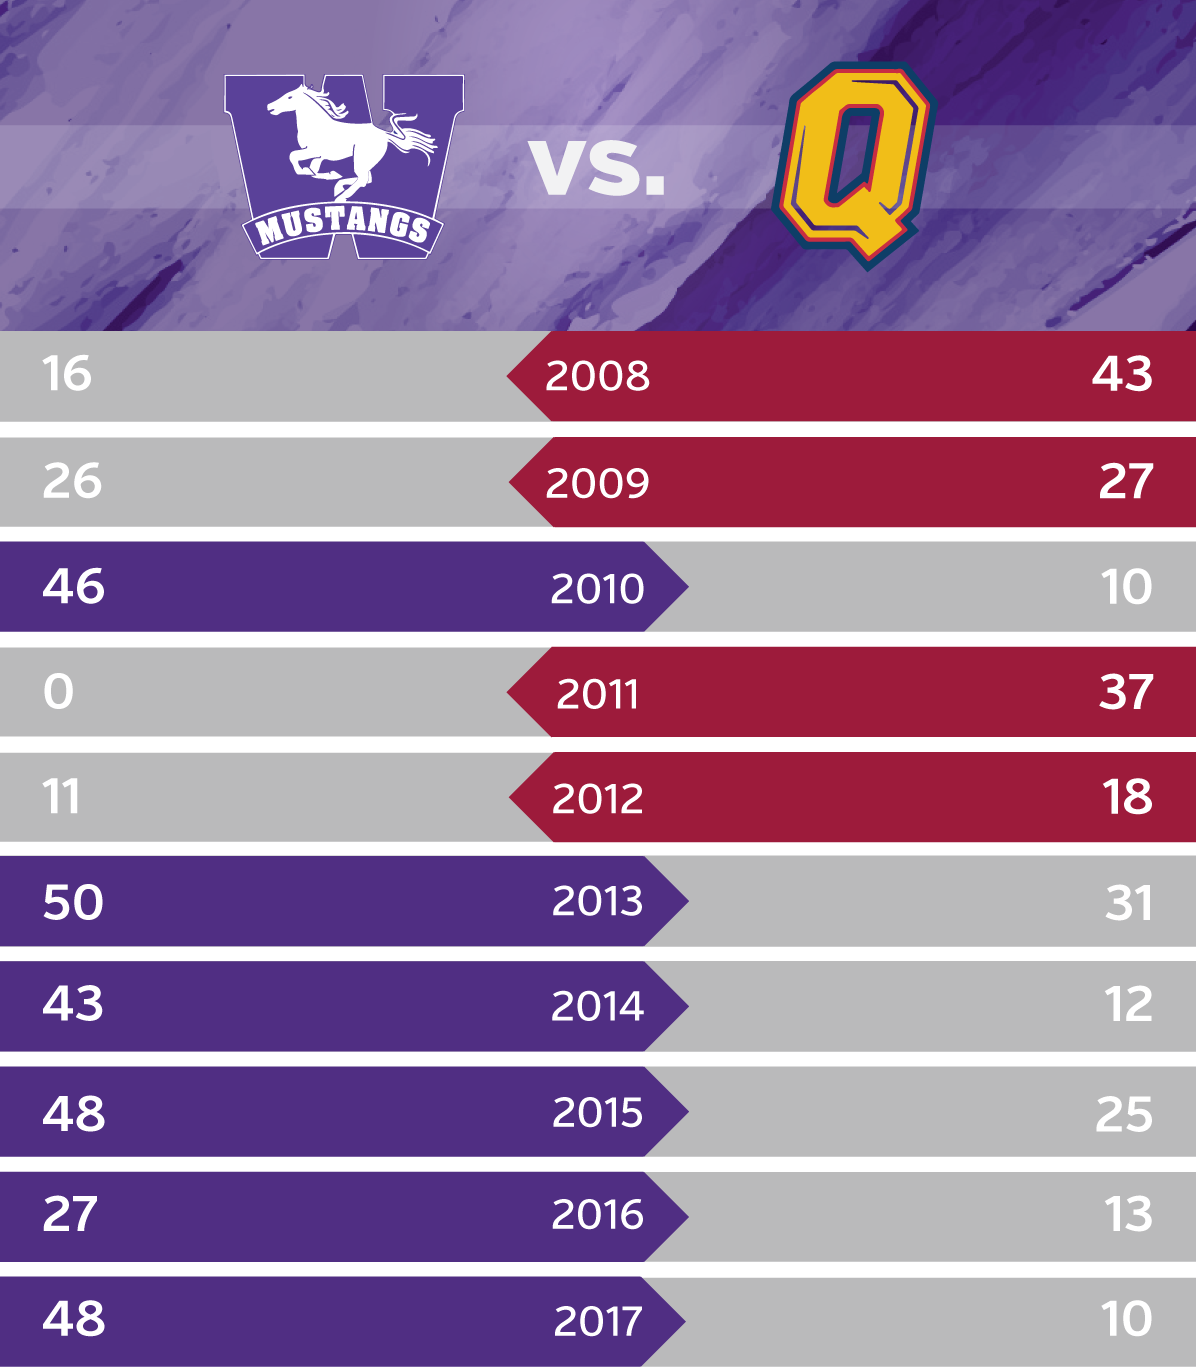 mustangs queens decade graphic